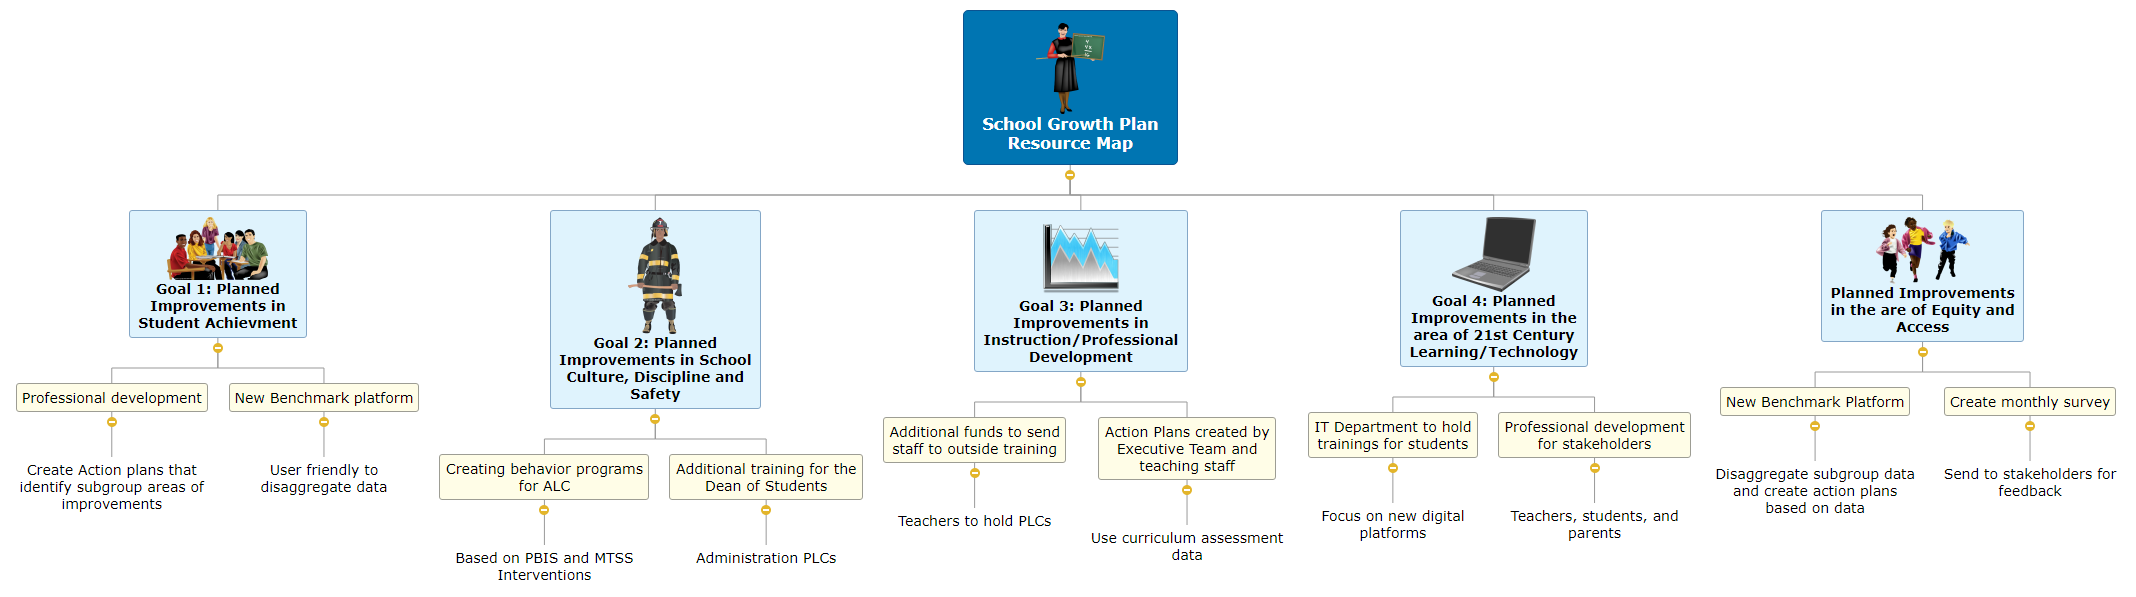 School Growth Plan Resource Map Mind Map